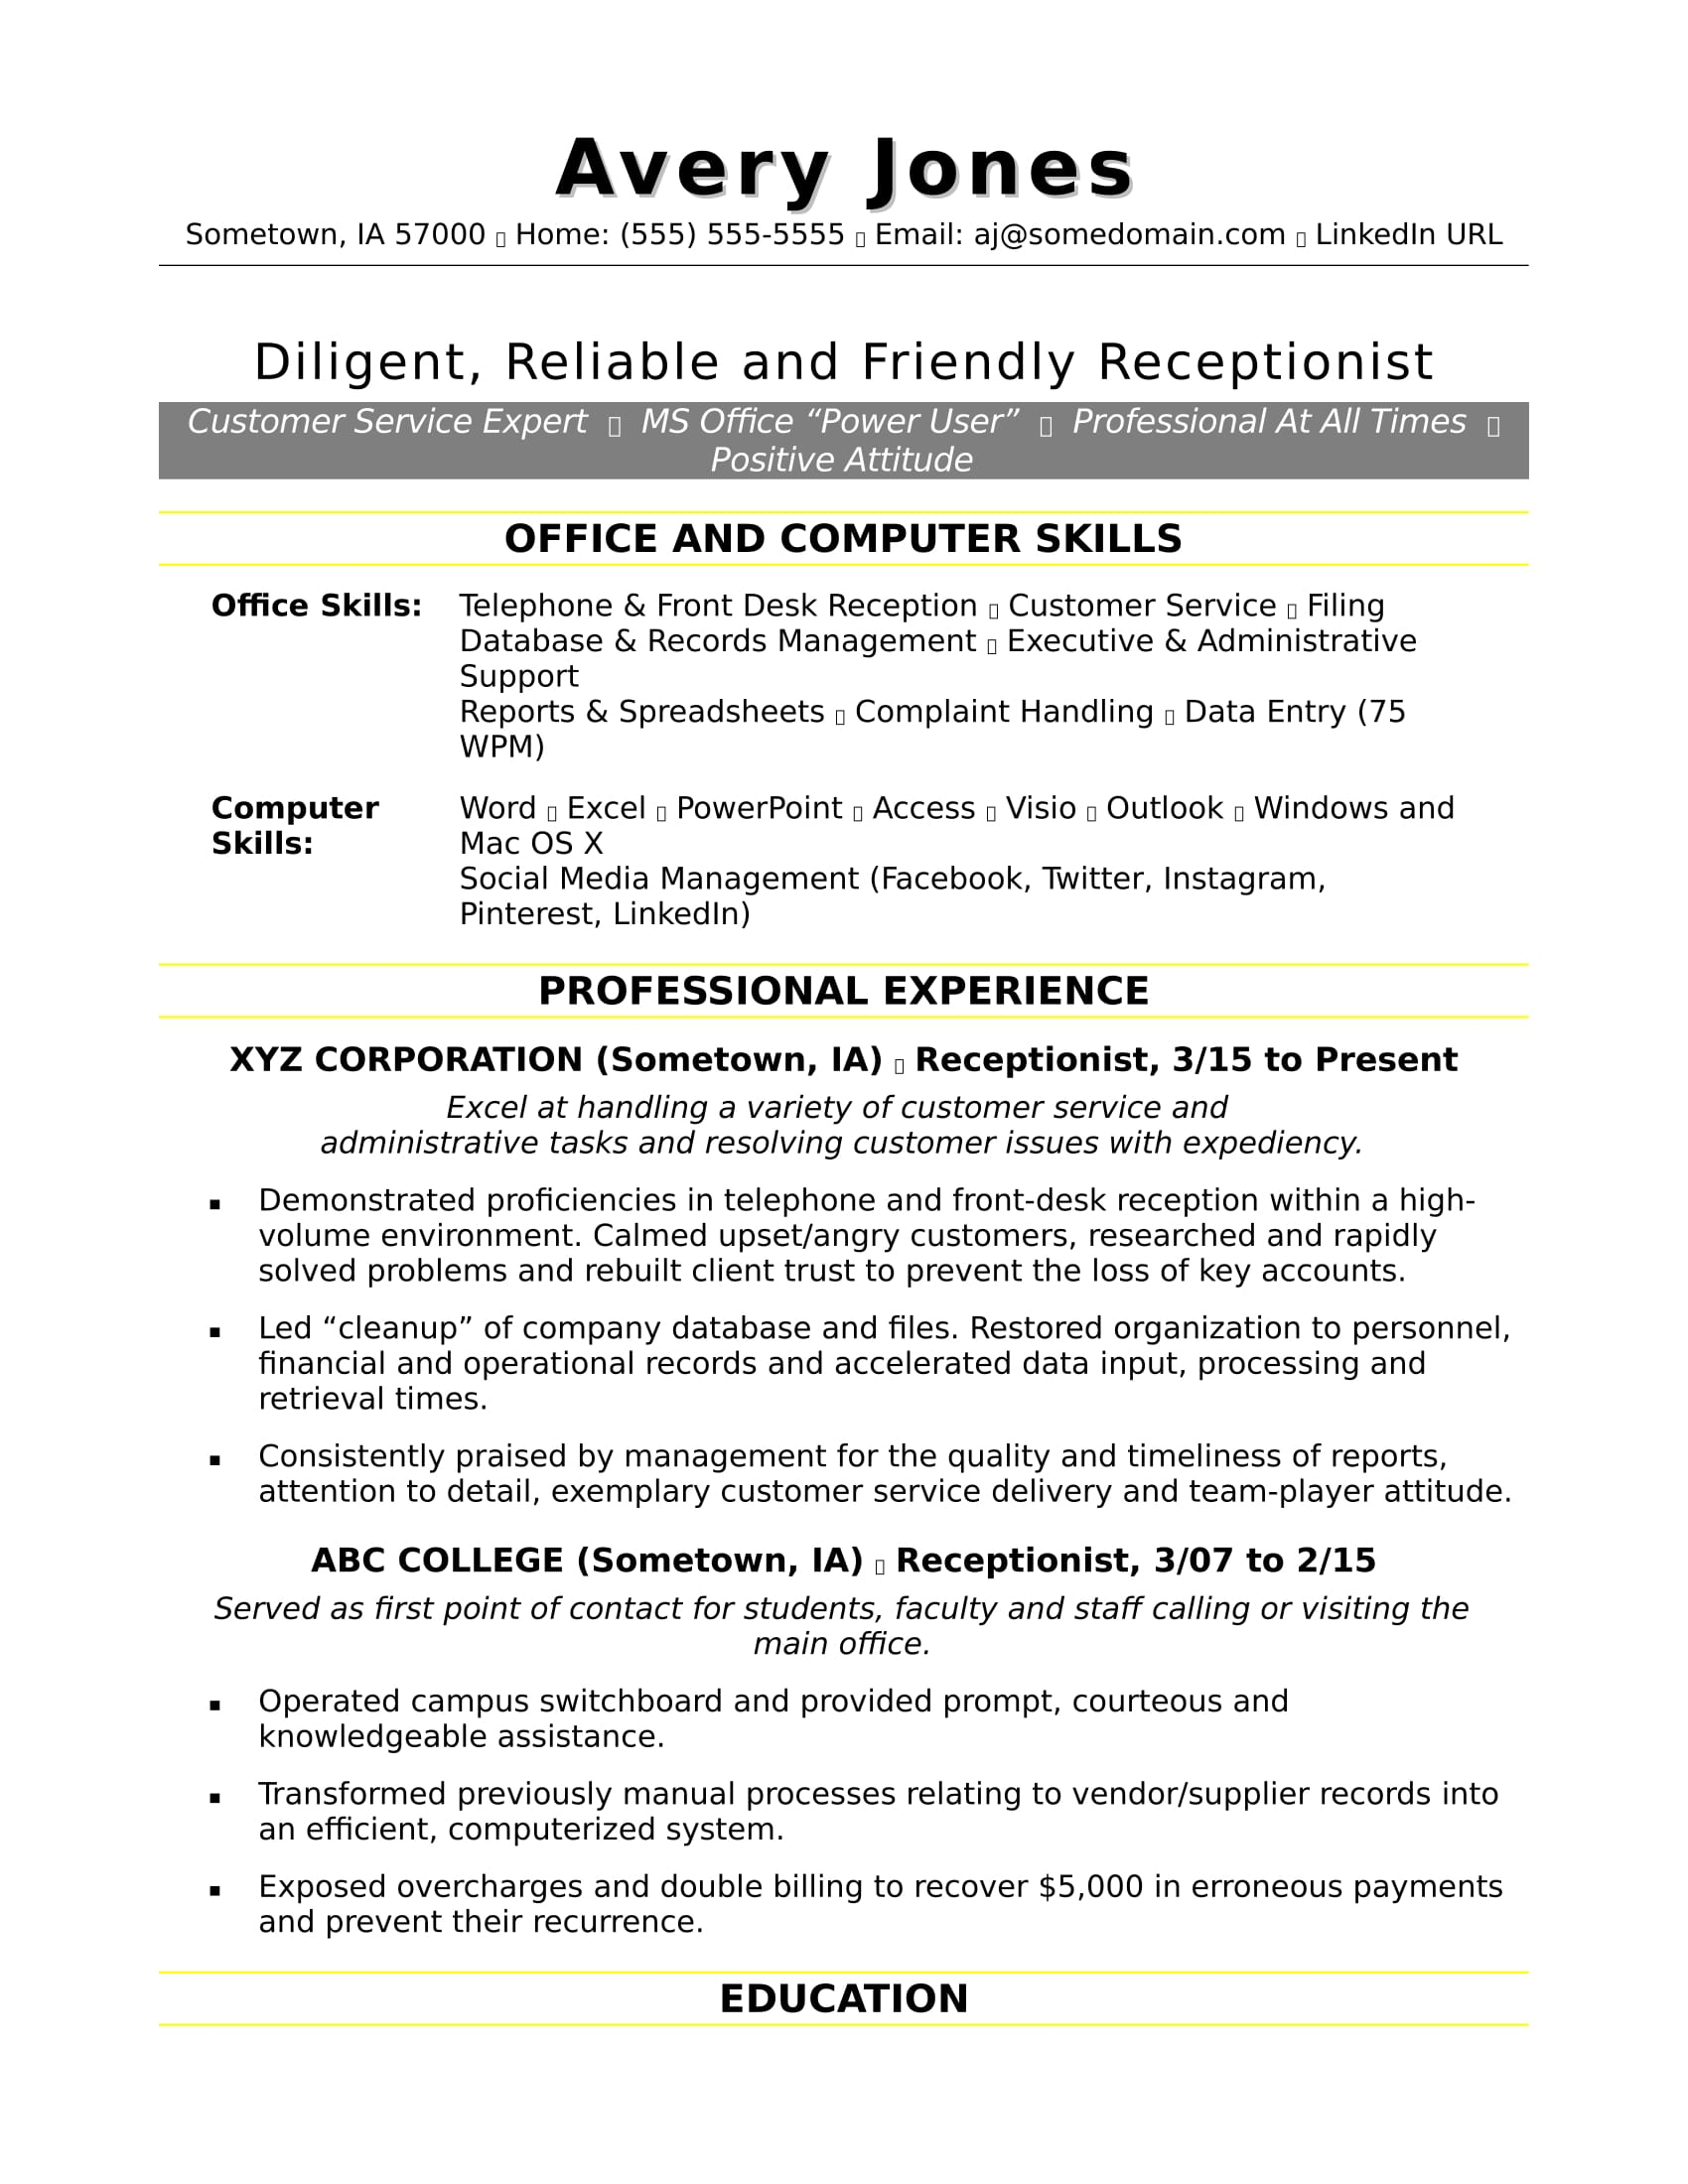 Receptionist resume sample monster sample resume for a receptionist thecheapjerseys Images